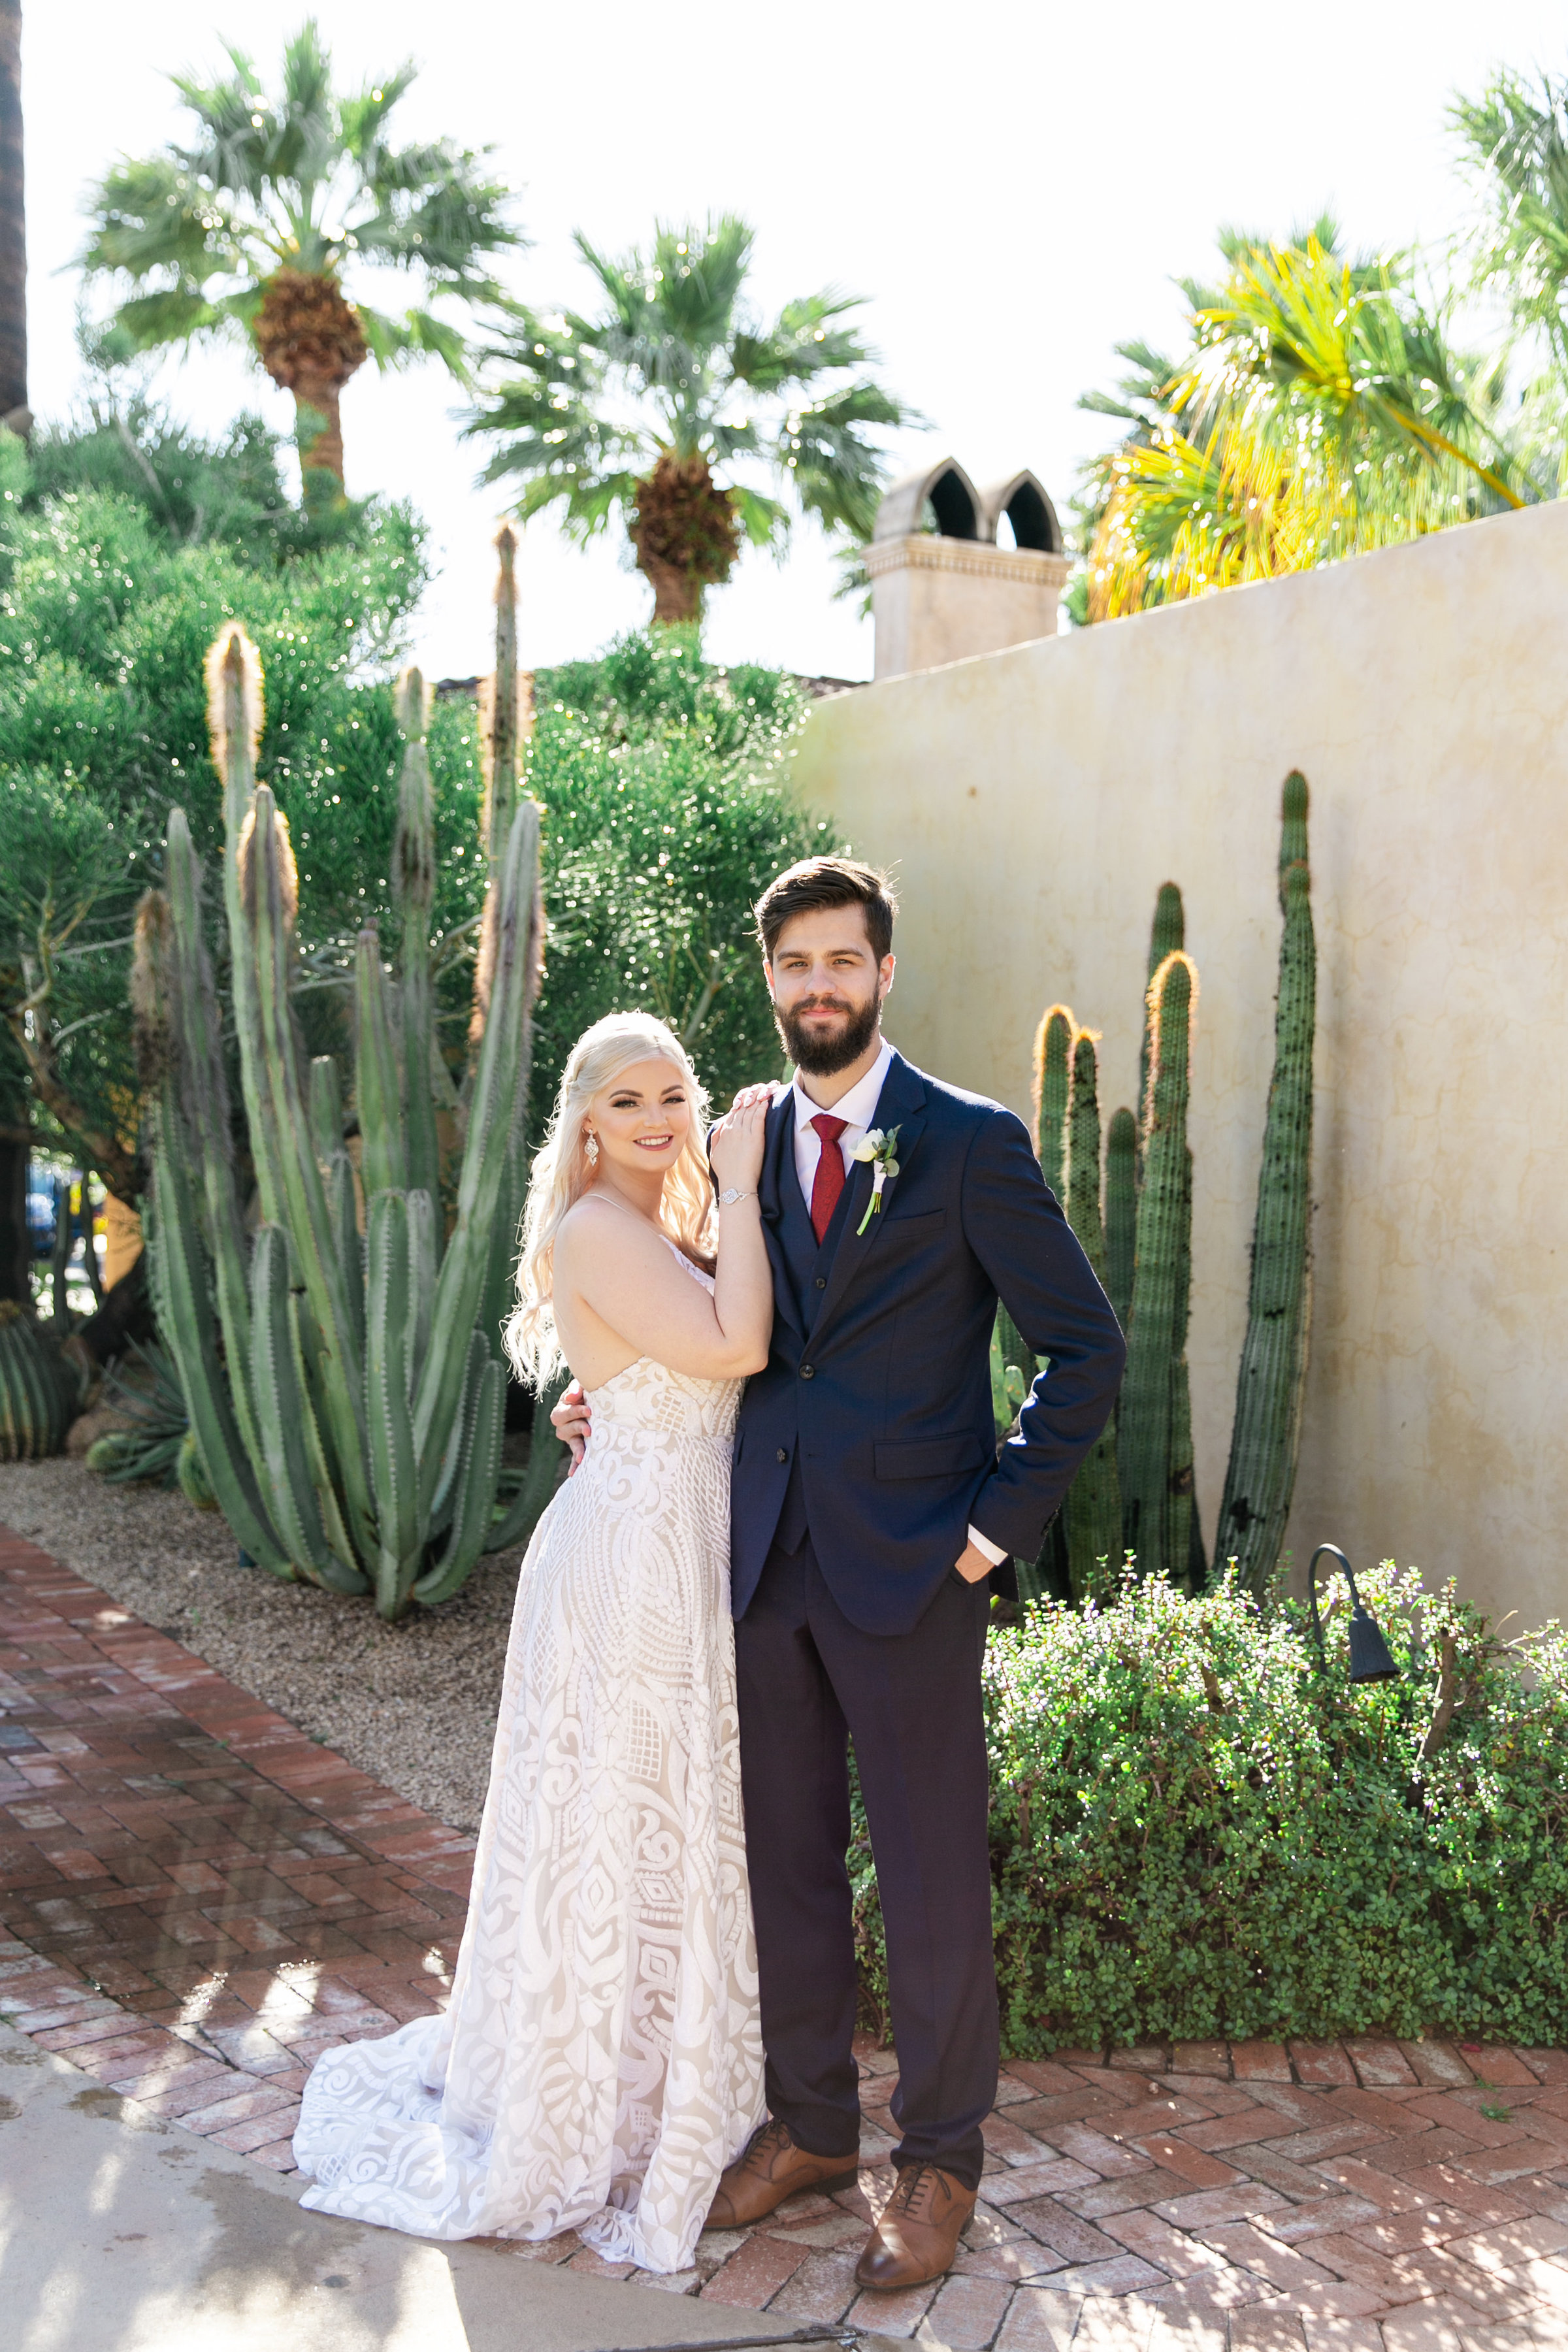 Karlie Colleen Photography - The Royal Palms Wedding - Some Like It Classic - Alex & Sam-145